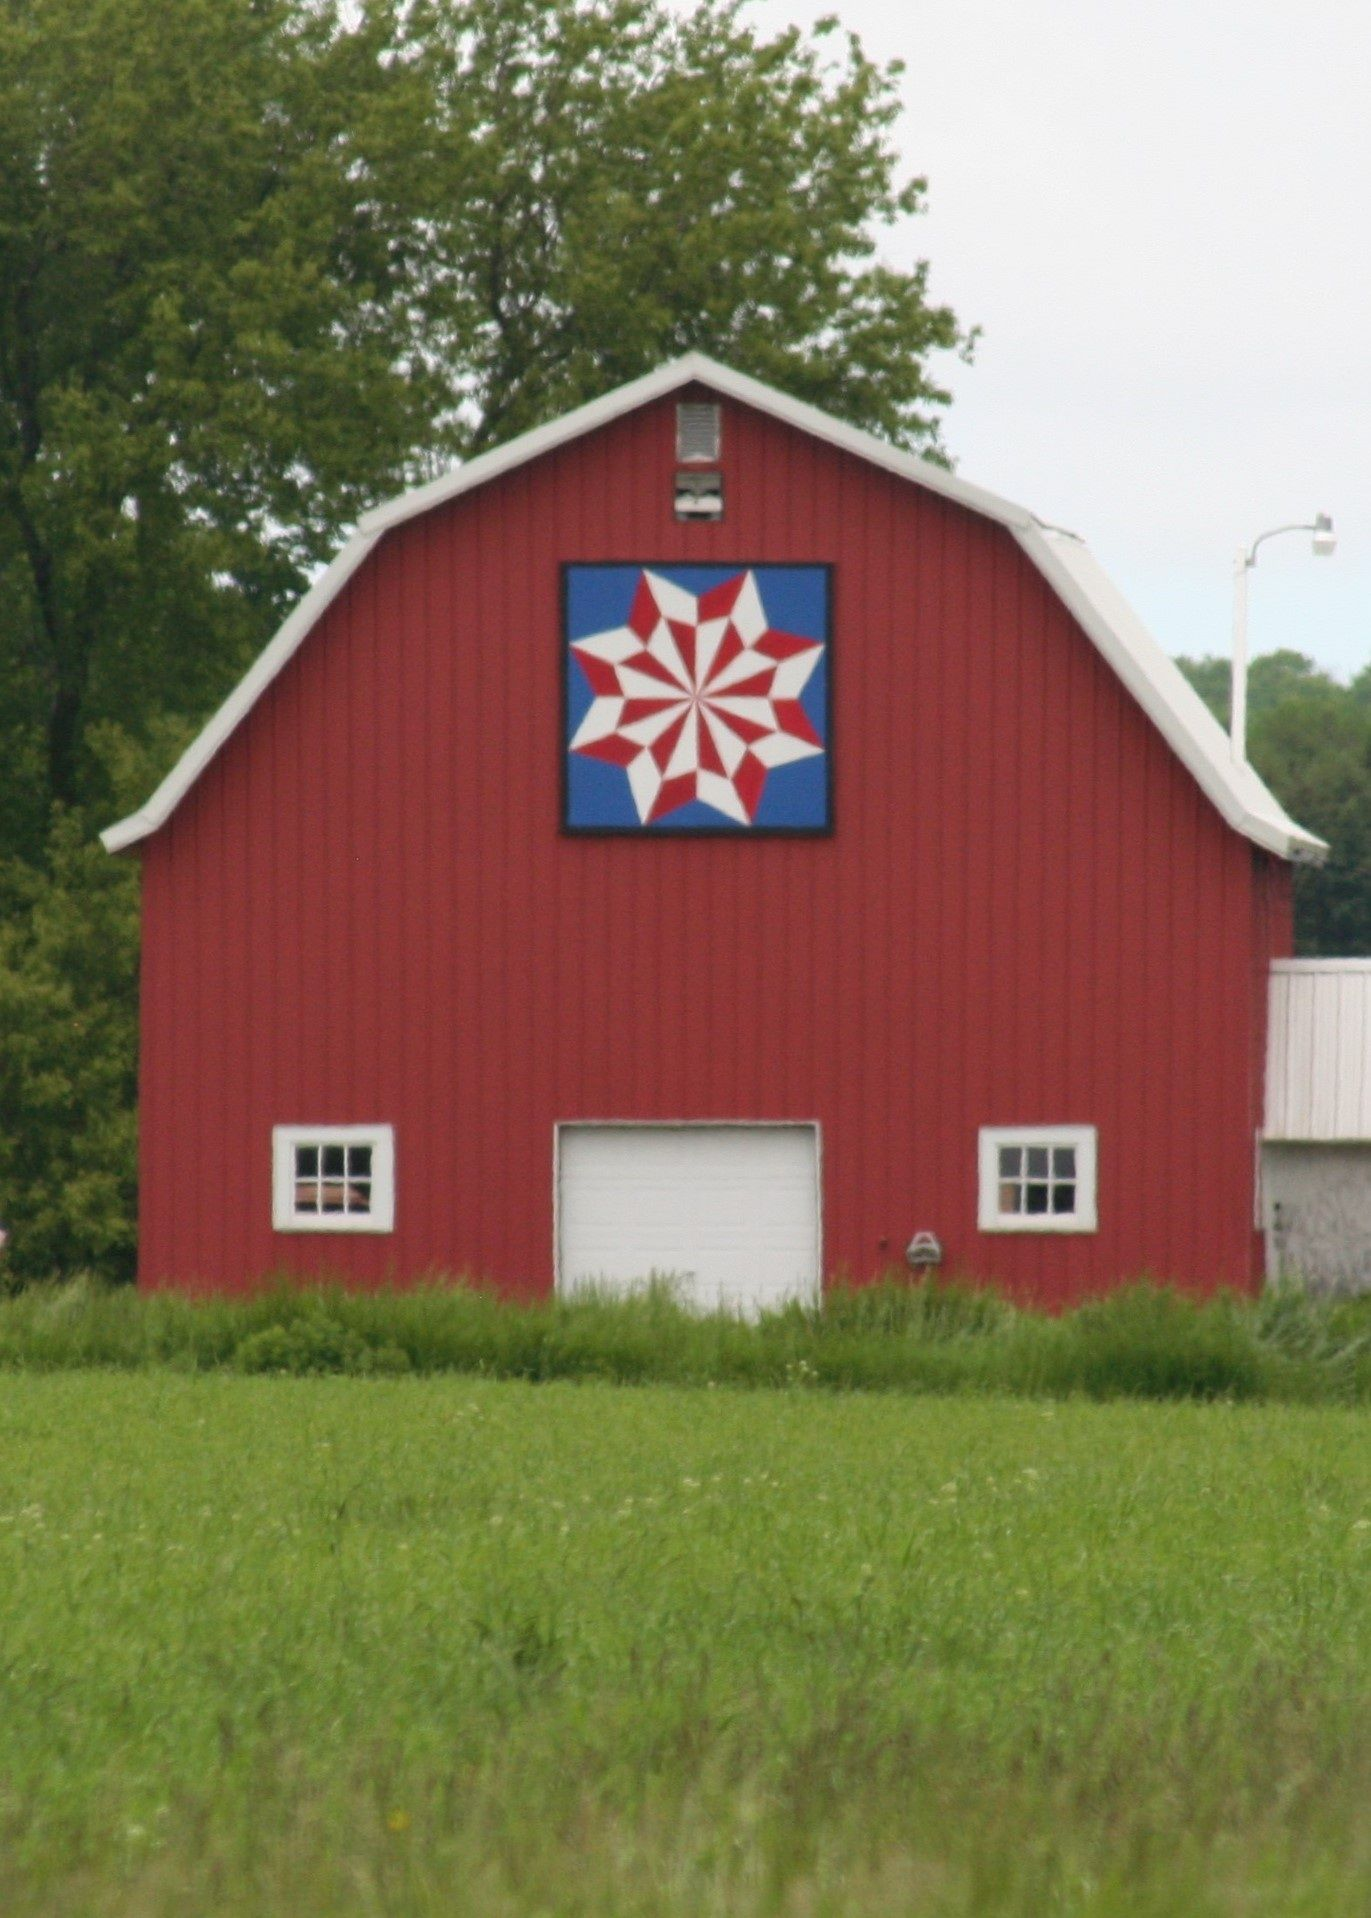 North Star Variation Quilt Barn Door County Wisconsin Barn Quilt Barn Quilts Barn Quilt Designs House Styles